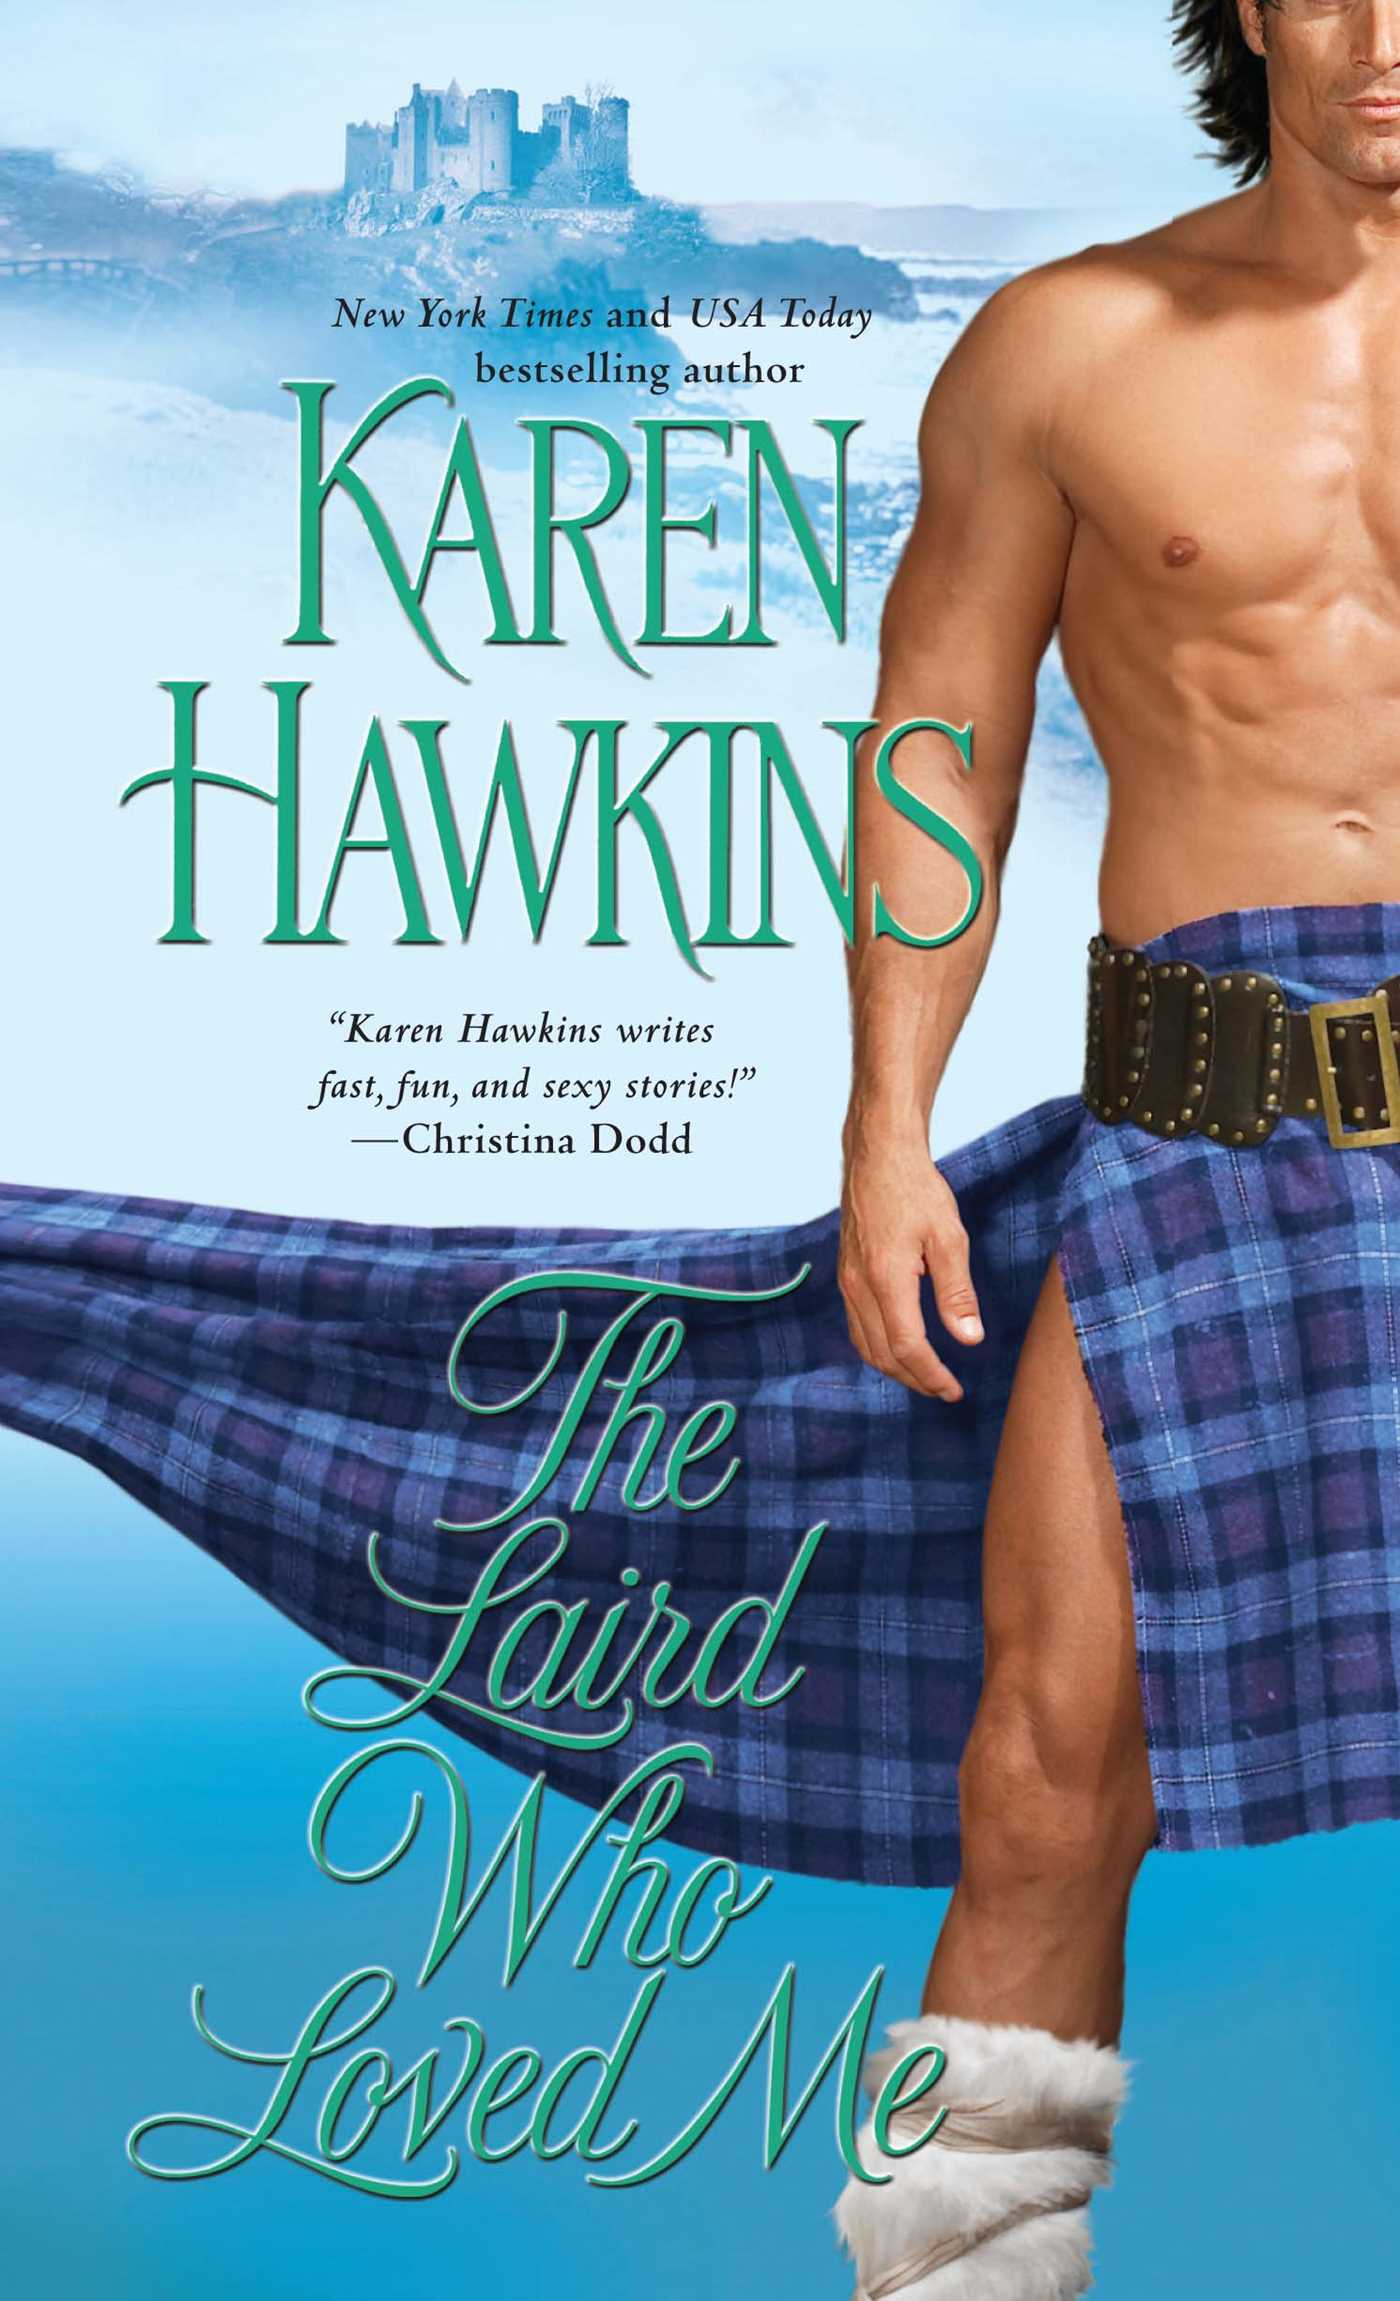 Laird-who-loved-me-9781439164150_hr